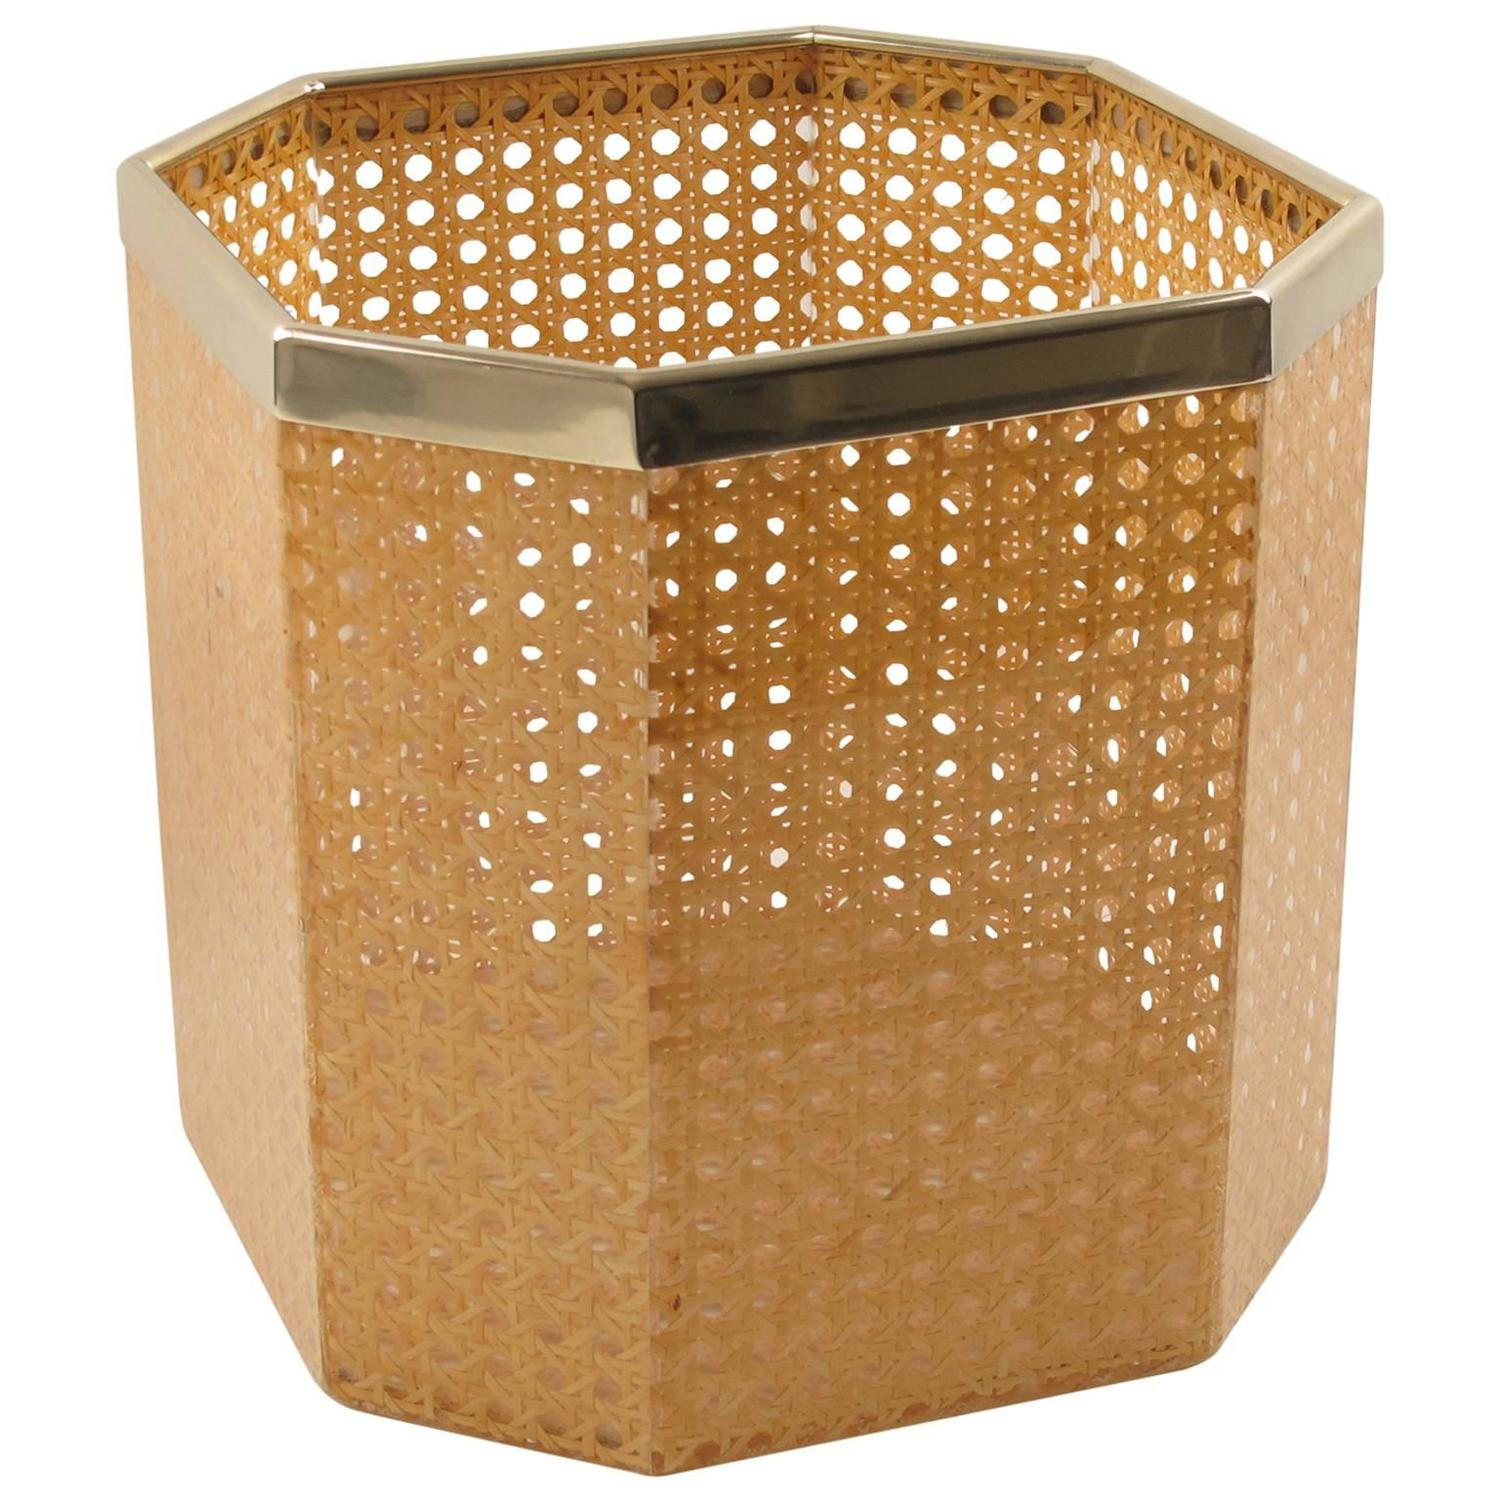 Vintage 1970s lucite and rattan waste basket for christian dior home collection at 1stdibs - Rattan waste basket ...